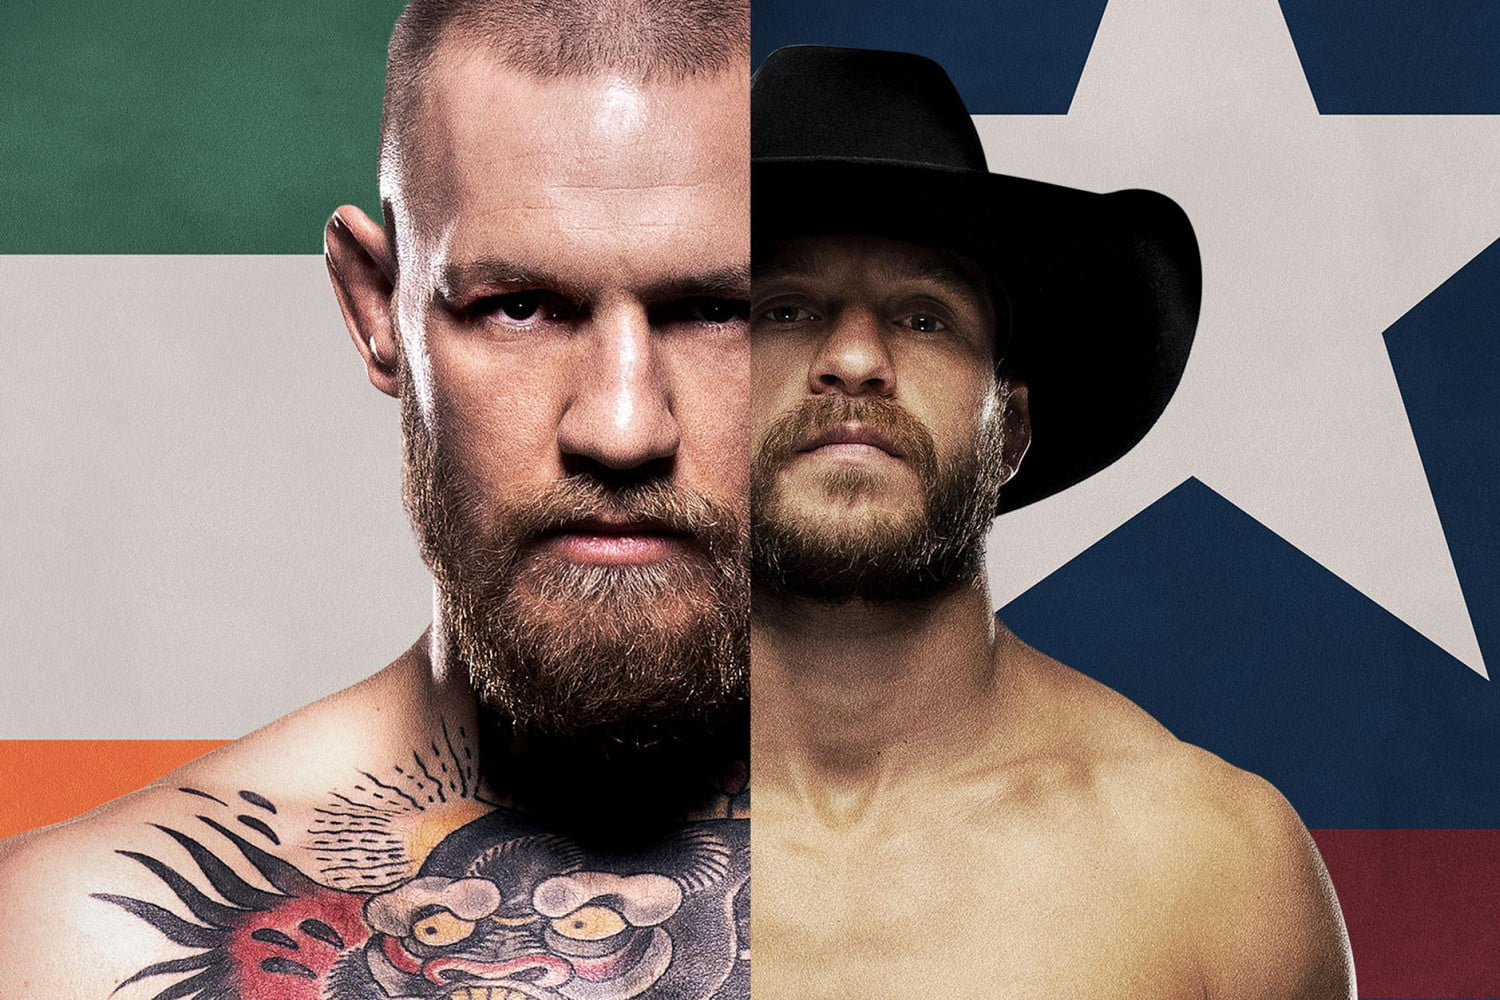 Last chance to sign up for ESPN+ with $30 off UFC 246: McGregor vs Cowboy PPV